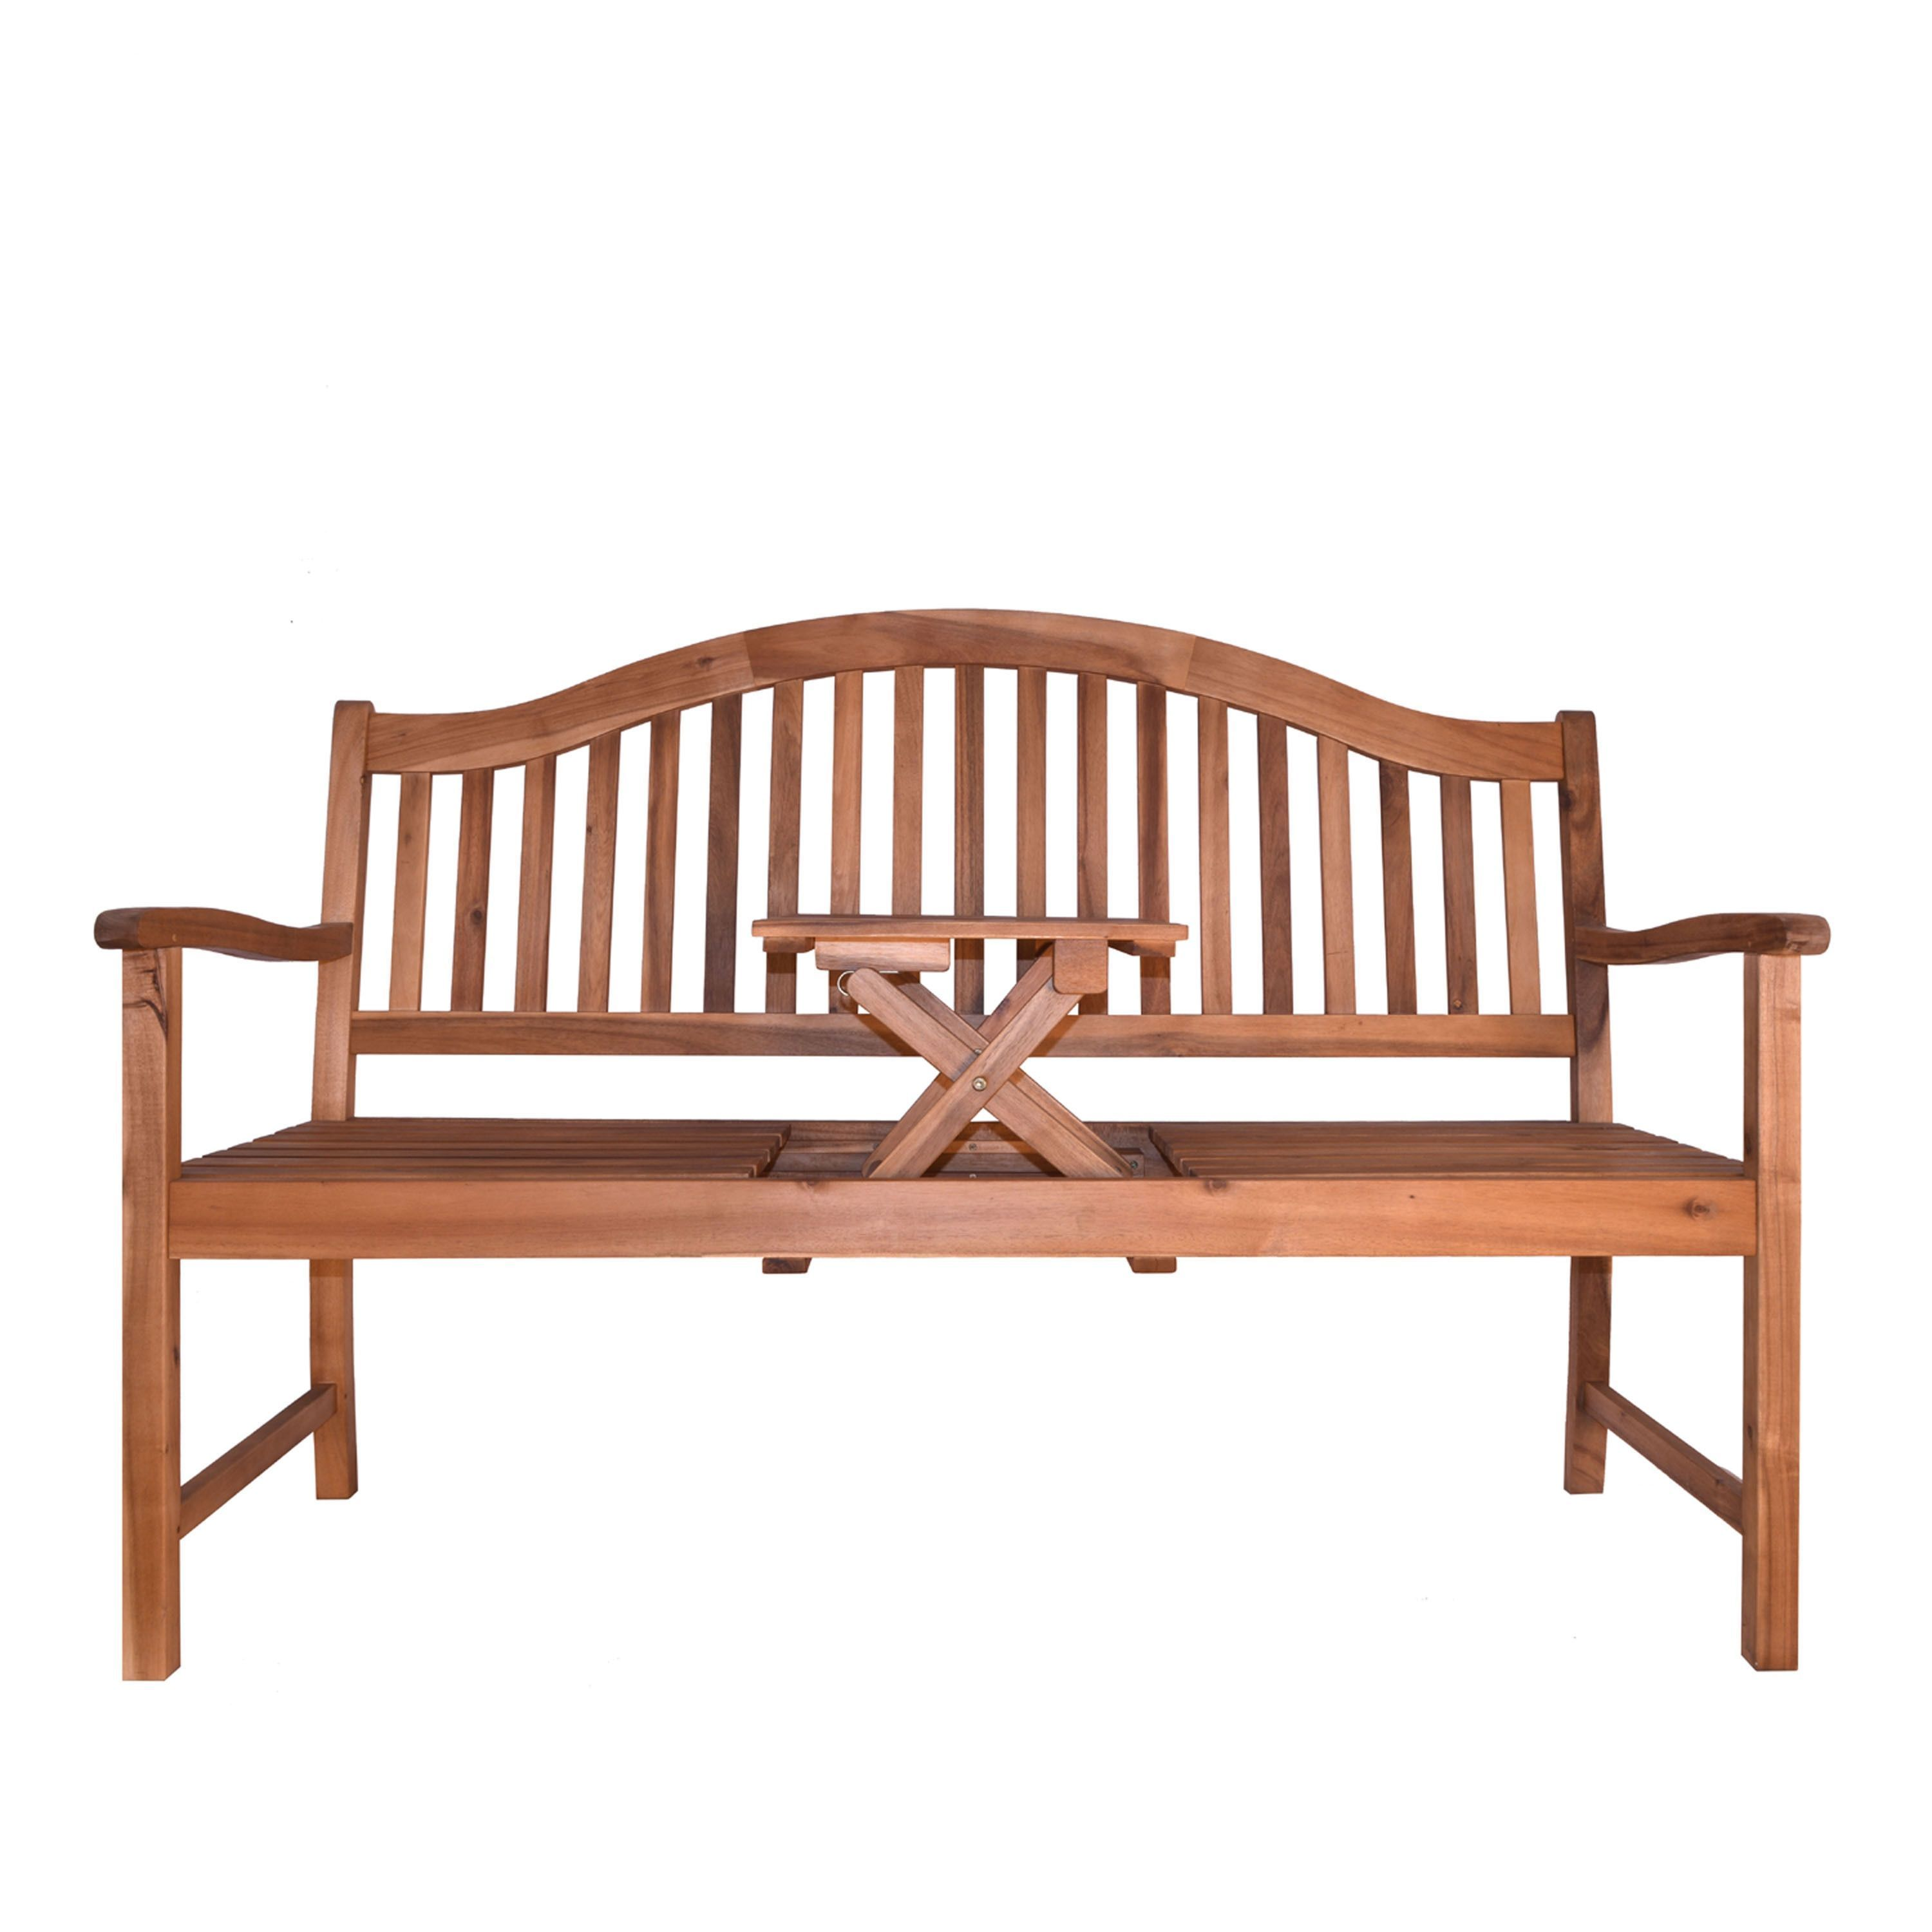 Remarkable Decor Therapy Oasis Outdoor Wood Bench With Center Table Short Links Chair Design For Home Short Linksinfo